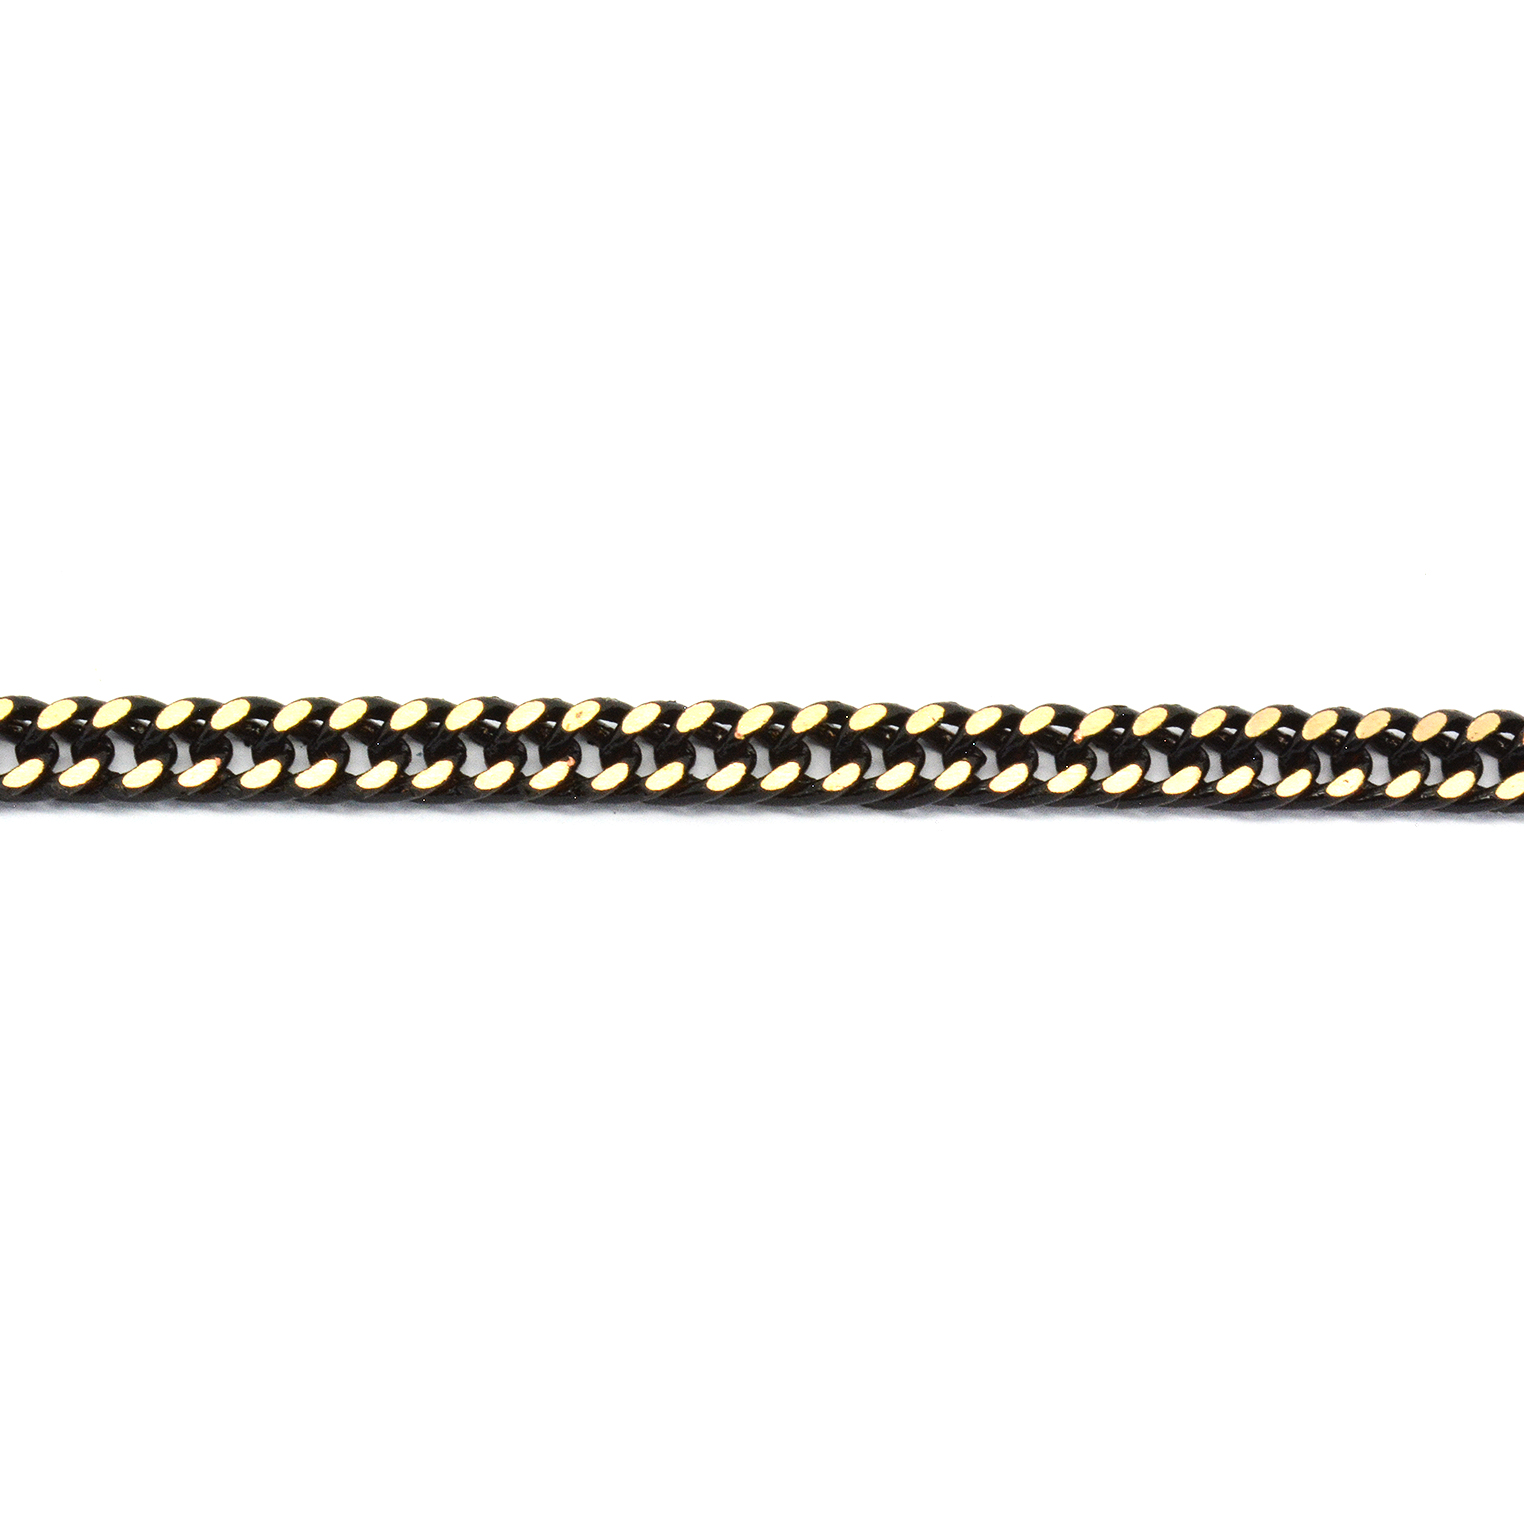 Polished black enamel stainless steel curb (gourmette) chain 4.2mm